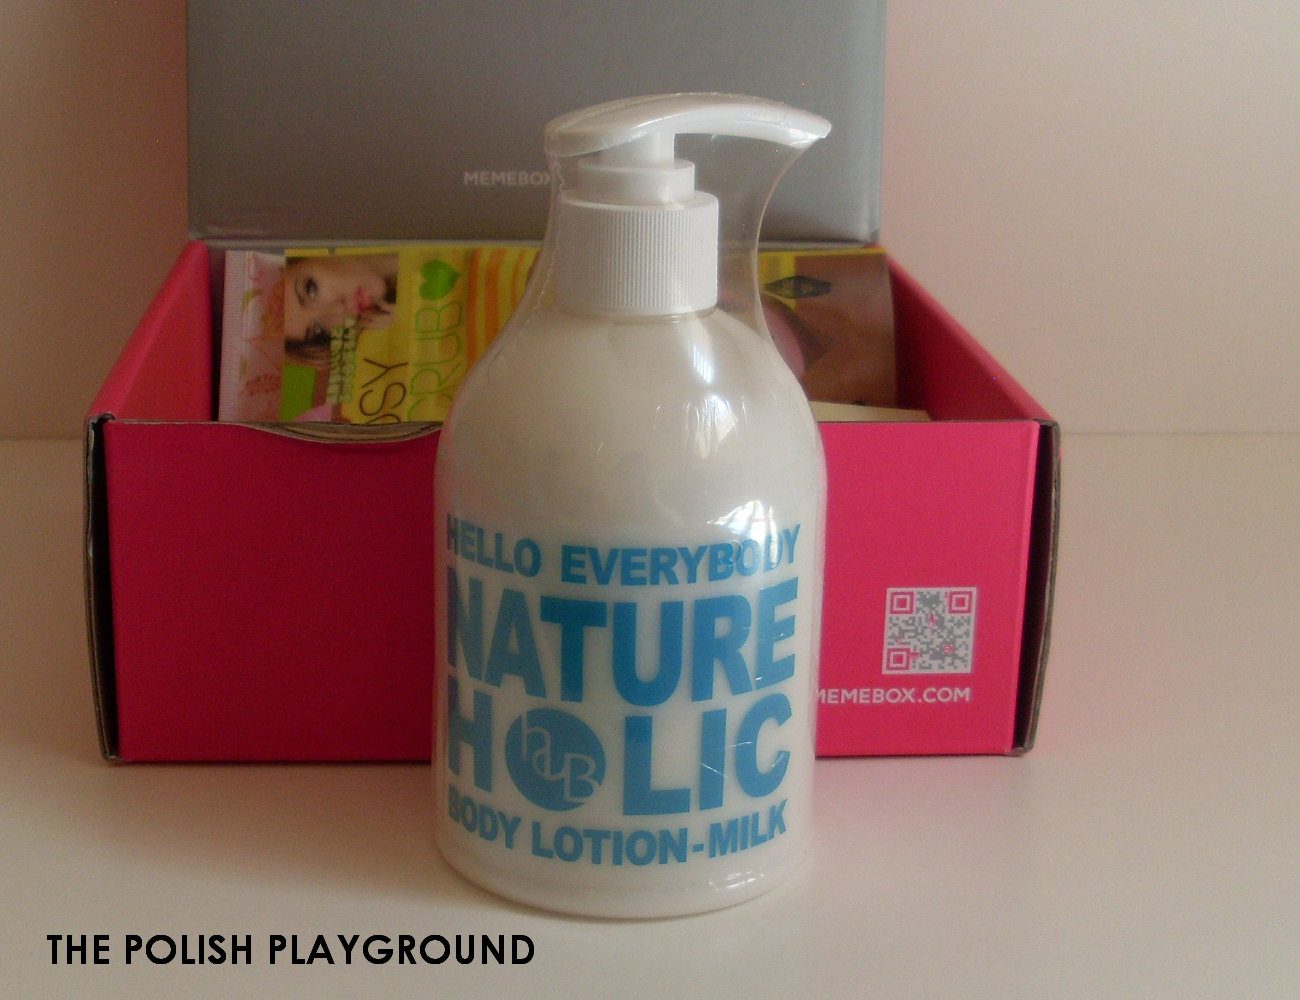 Memebox Special #7 Milk Unboxing - Hello Everybody Nature Holic Body Lotion Milk